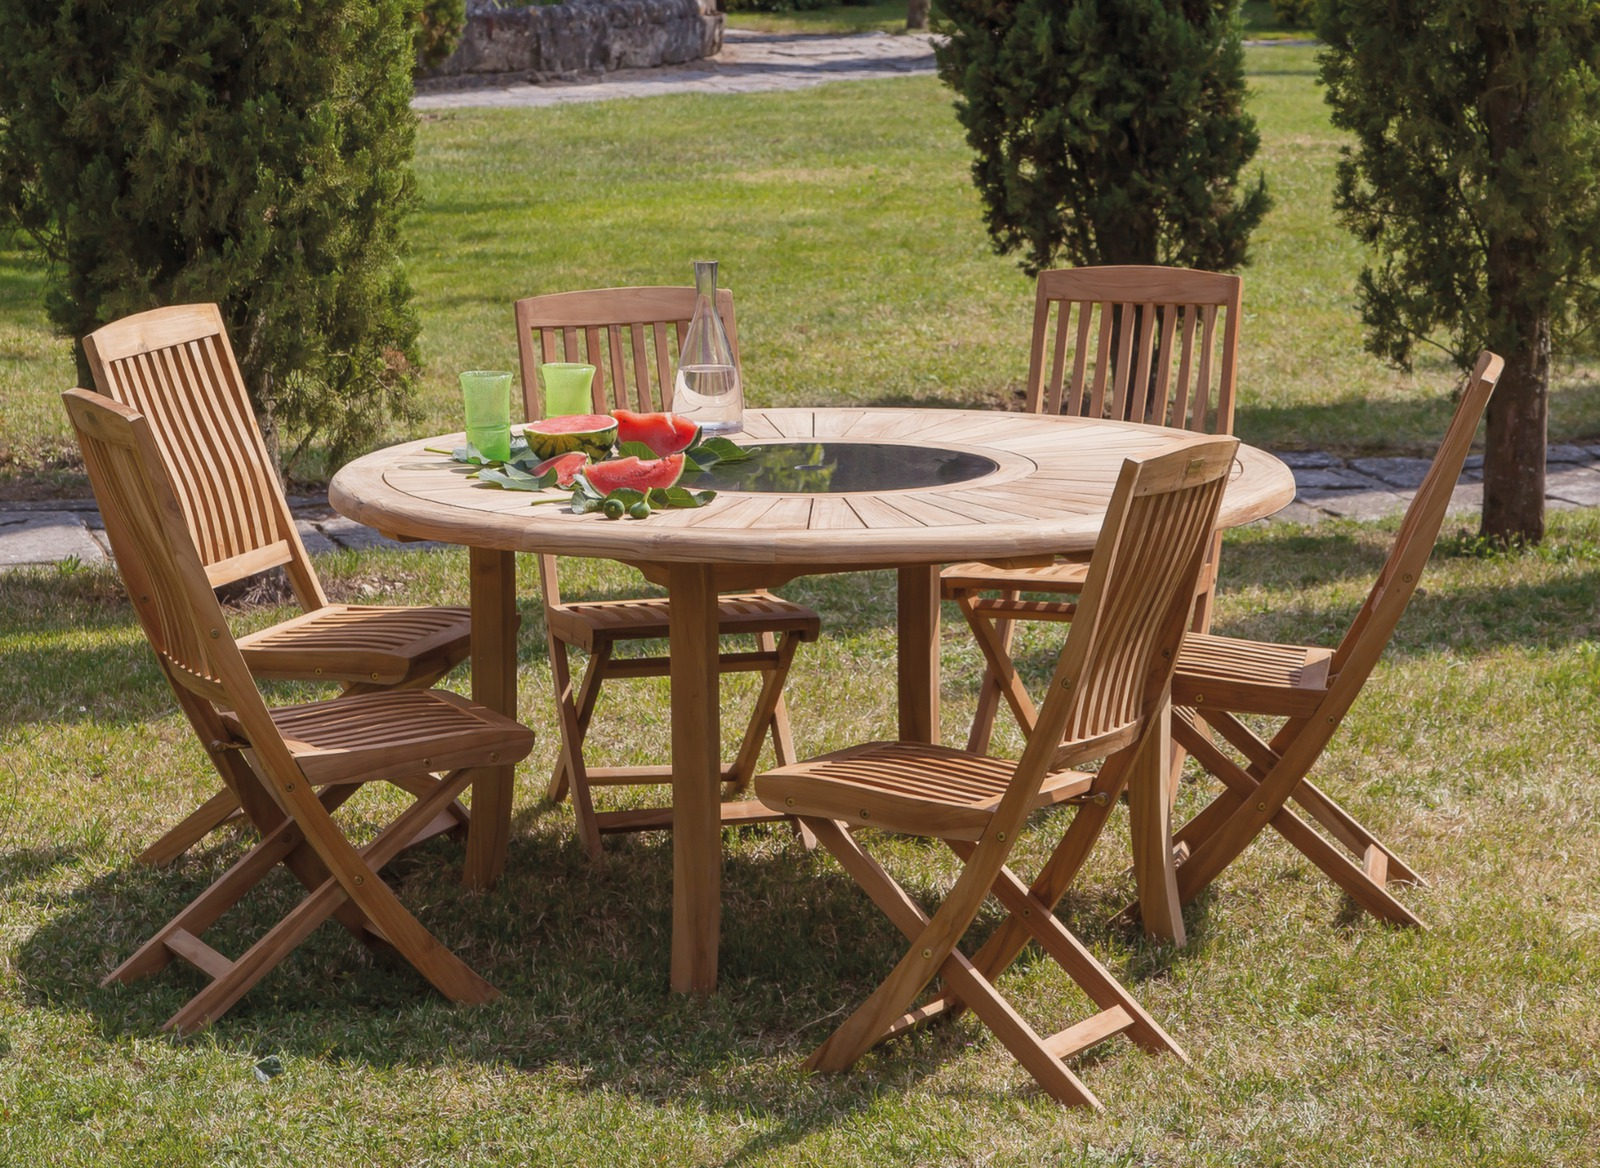 table brhat 155 cm 6 chaises pliantes - Salon De Jardin Table Ronde